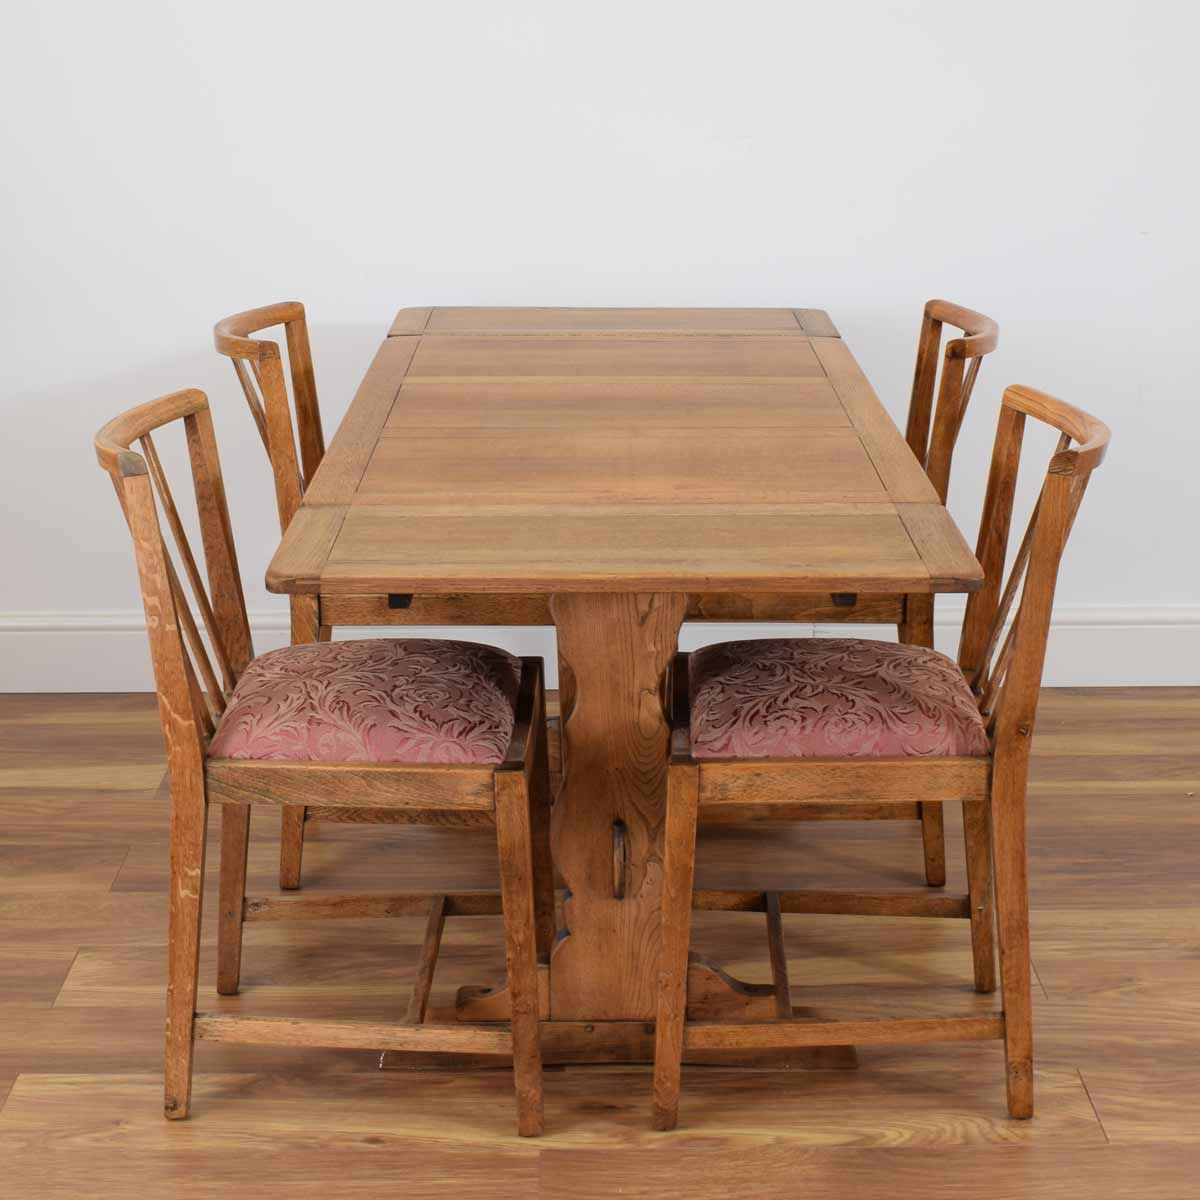 Restored Draw Leaf Table & 4 Chairs